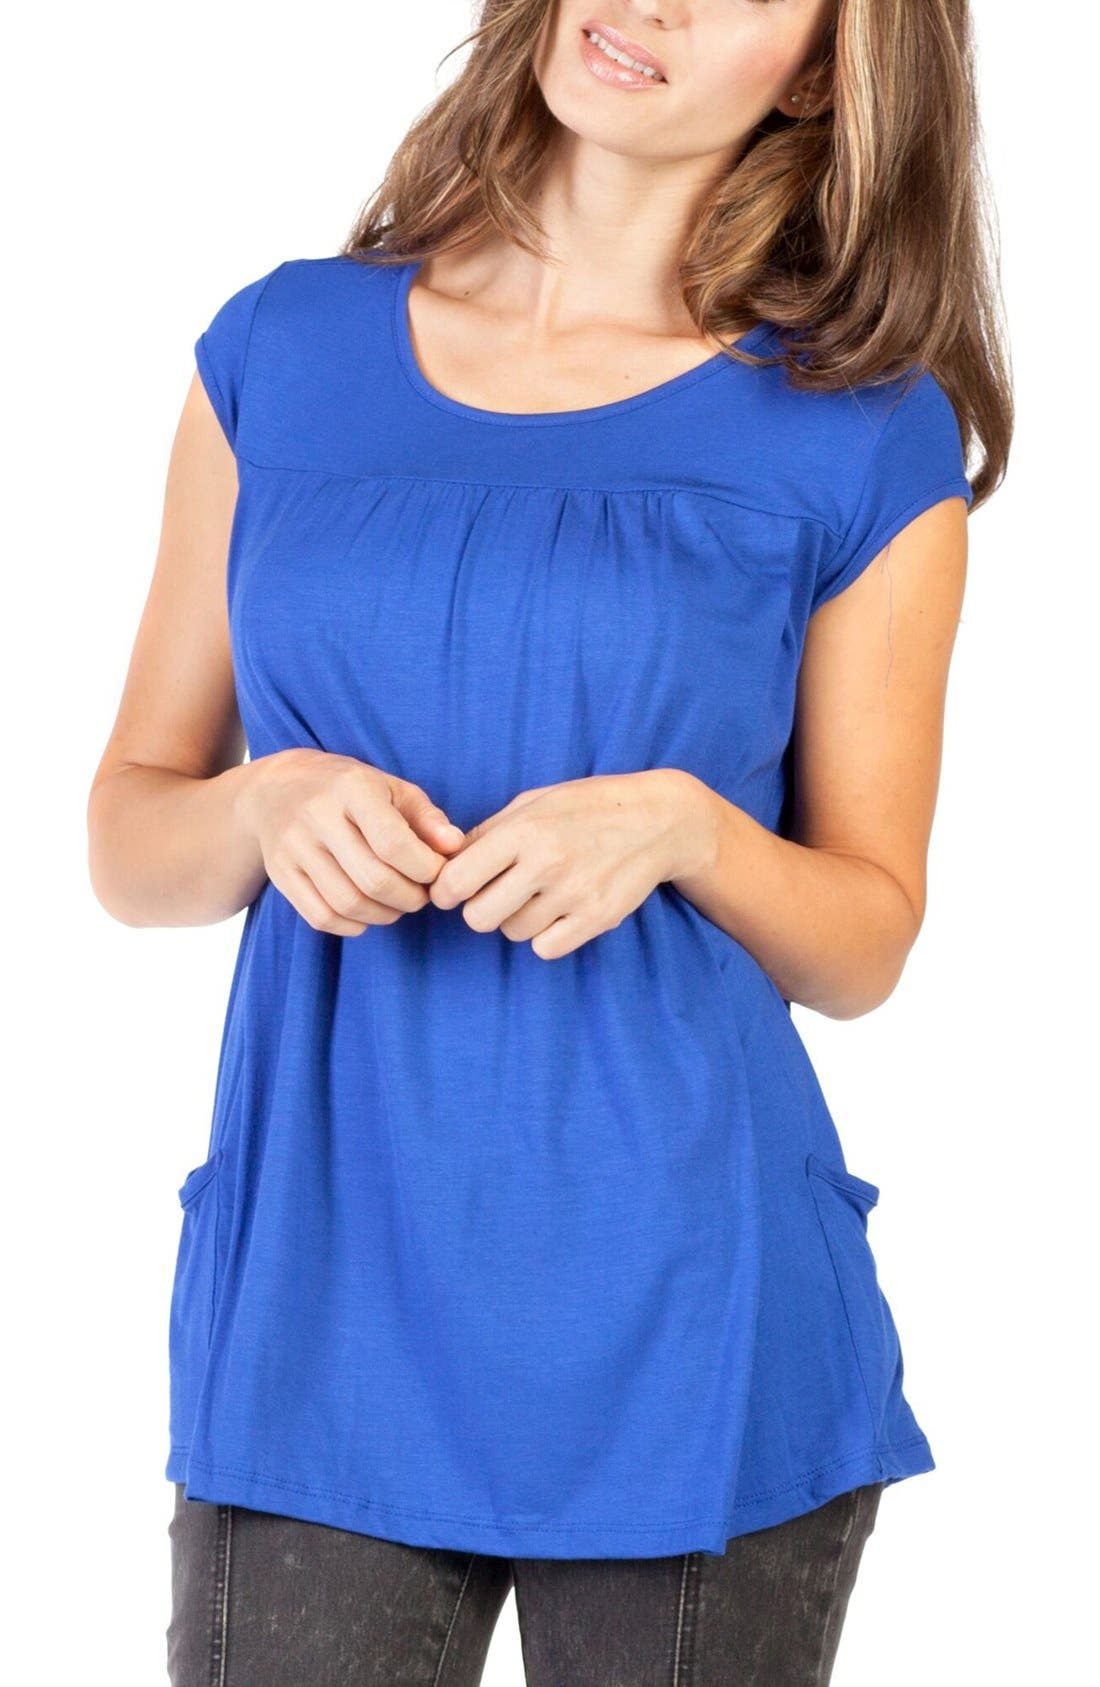 'The Babydoll' Maternity Nursing Top,                             Main thumbnail 1, color,                             BLUE